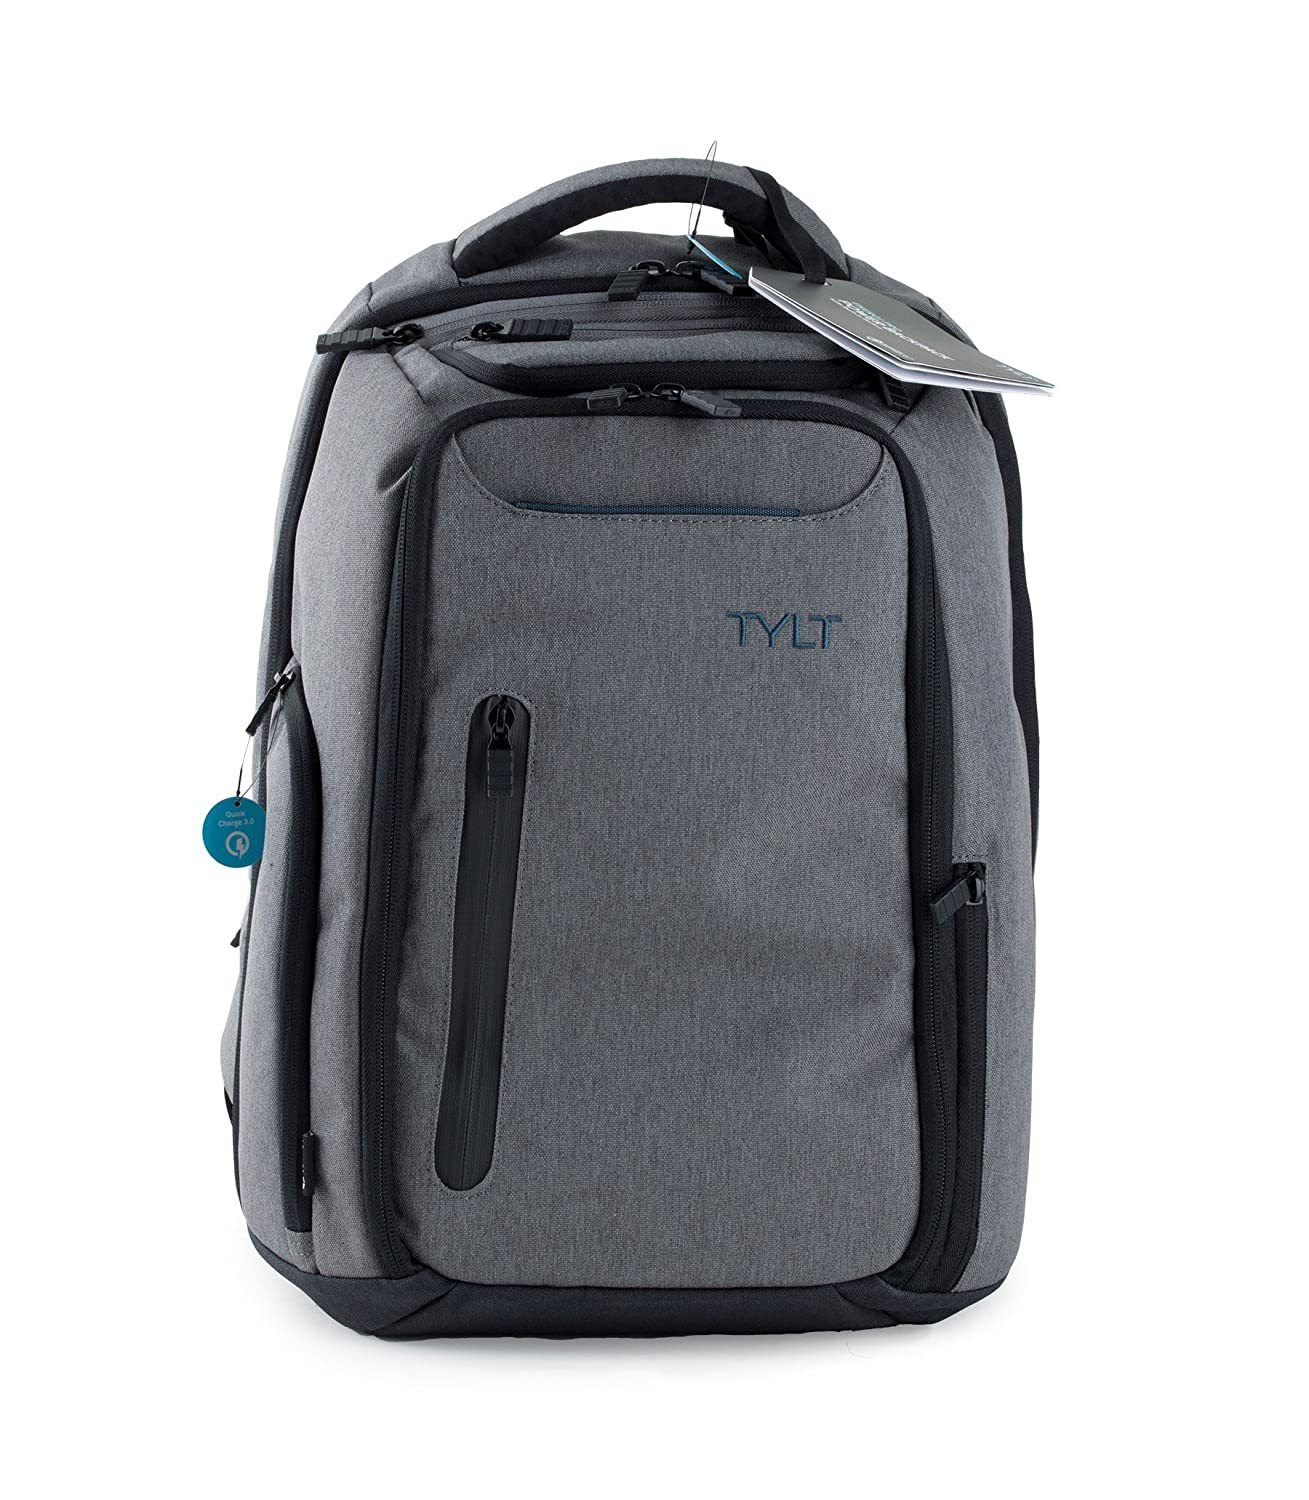 TYLT Energi Pro Power Backpack with Charging Station - Charge Up to 3 Devices at Once via USB or USB Type-C Ports, TSA Approved Laptop and Mobile ...